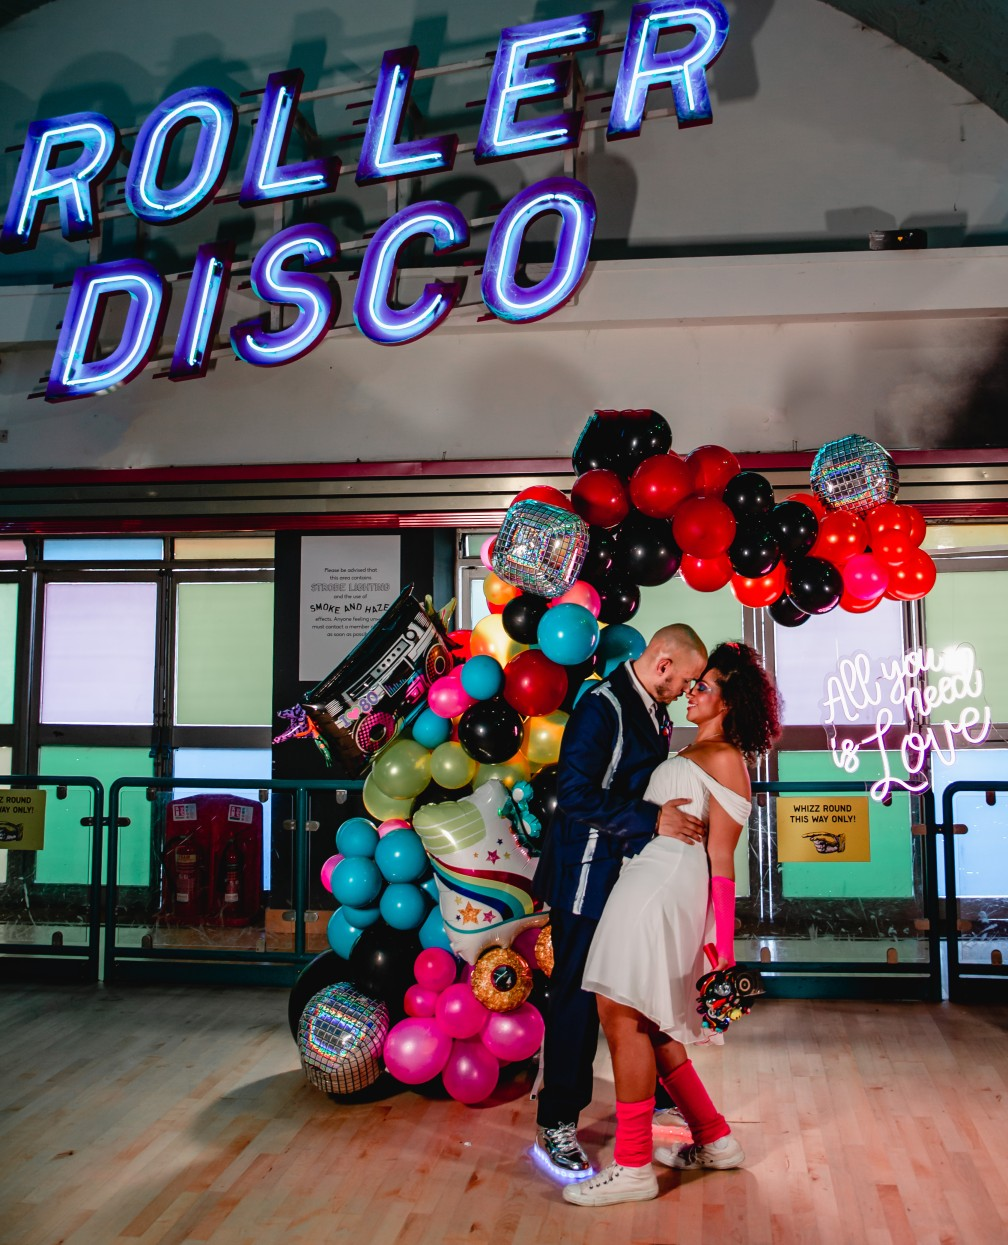 fun wedding balloons - 80s wedding balloons - roller disco wedding - colourful wedding - retro wedding